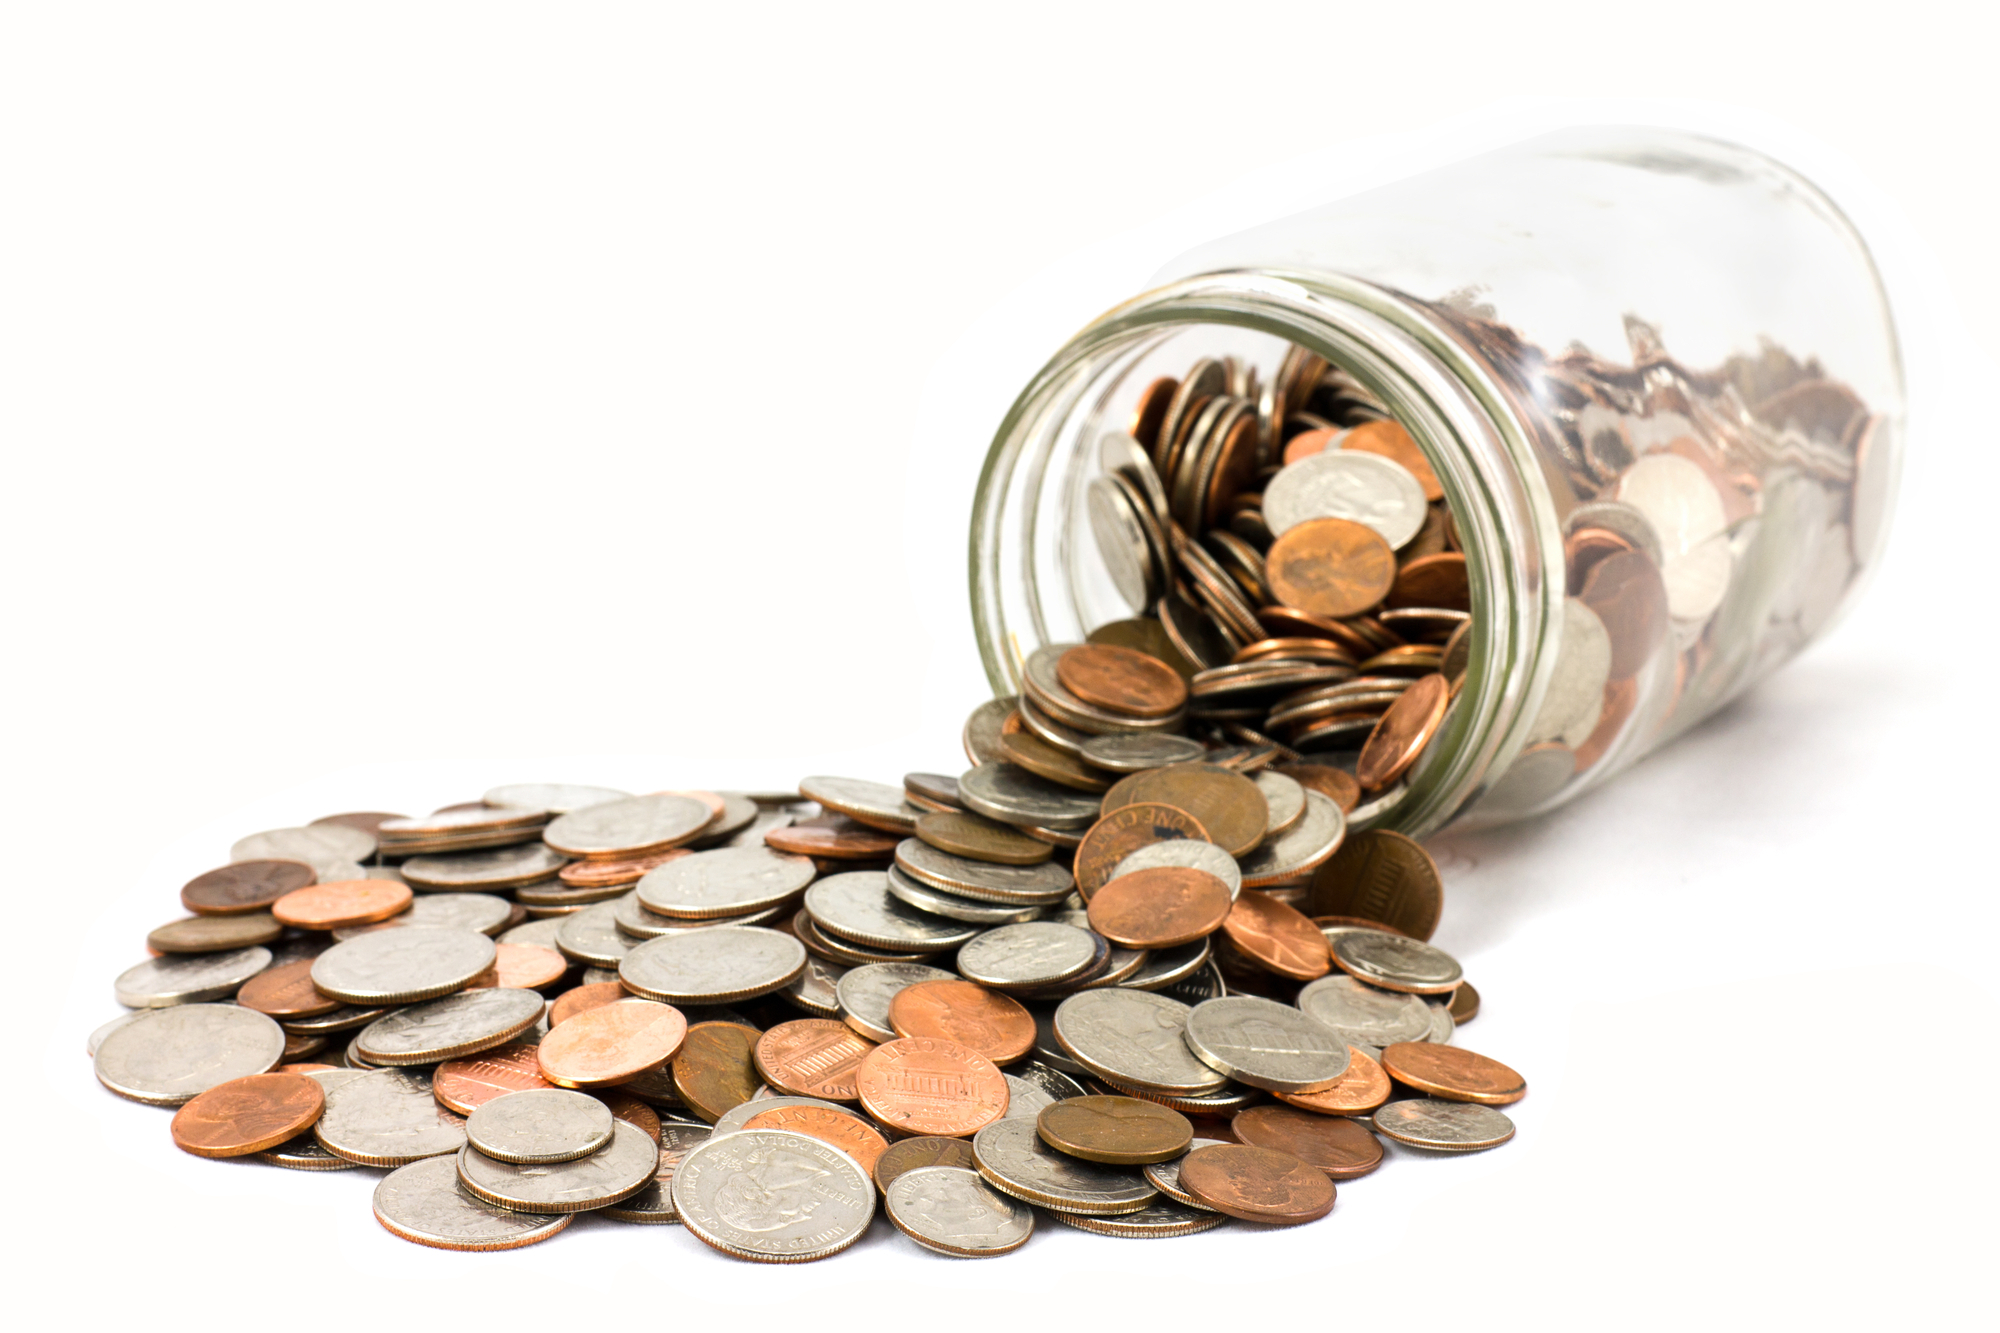 Coins spilling out of a glass jar, signifying running a marketing program with a significantly reduced budget.